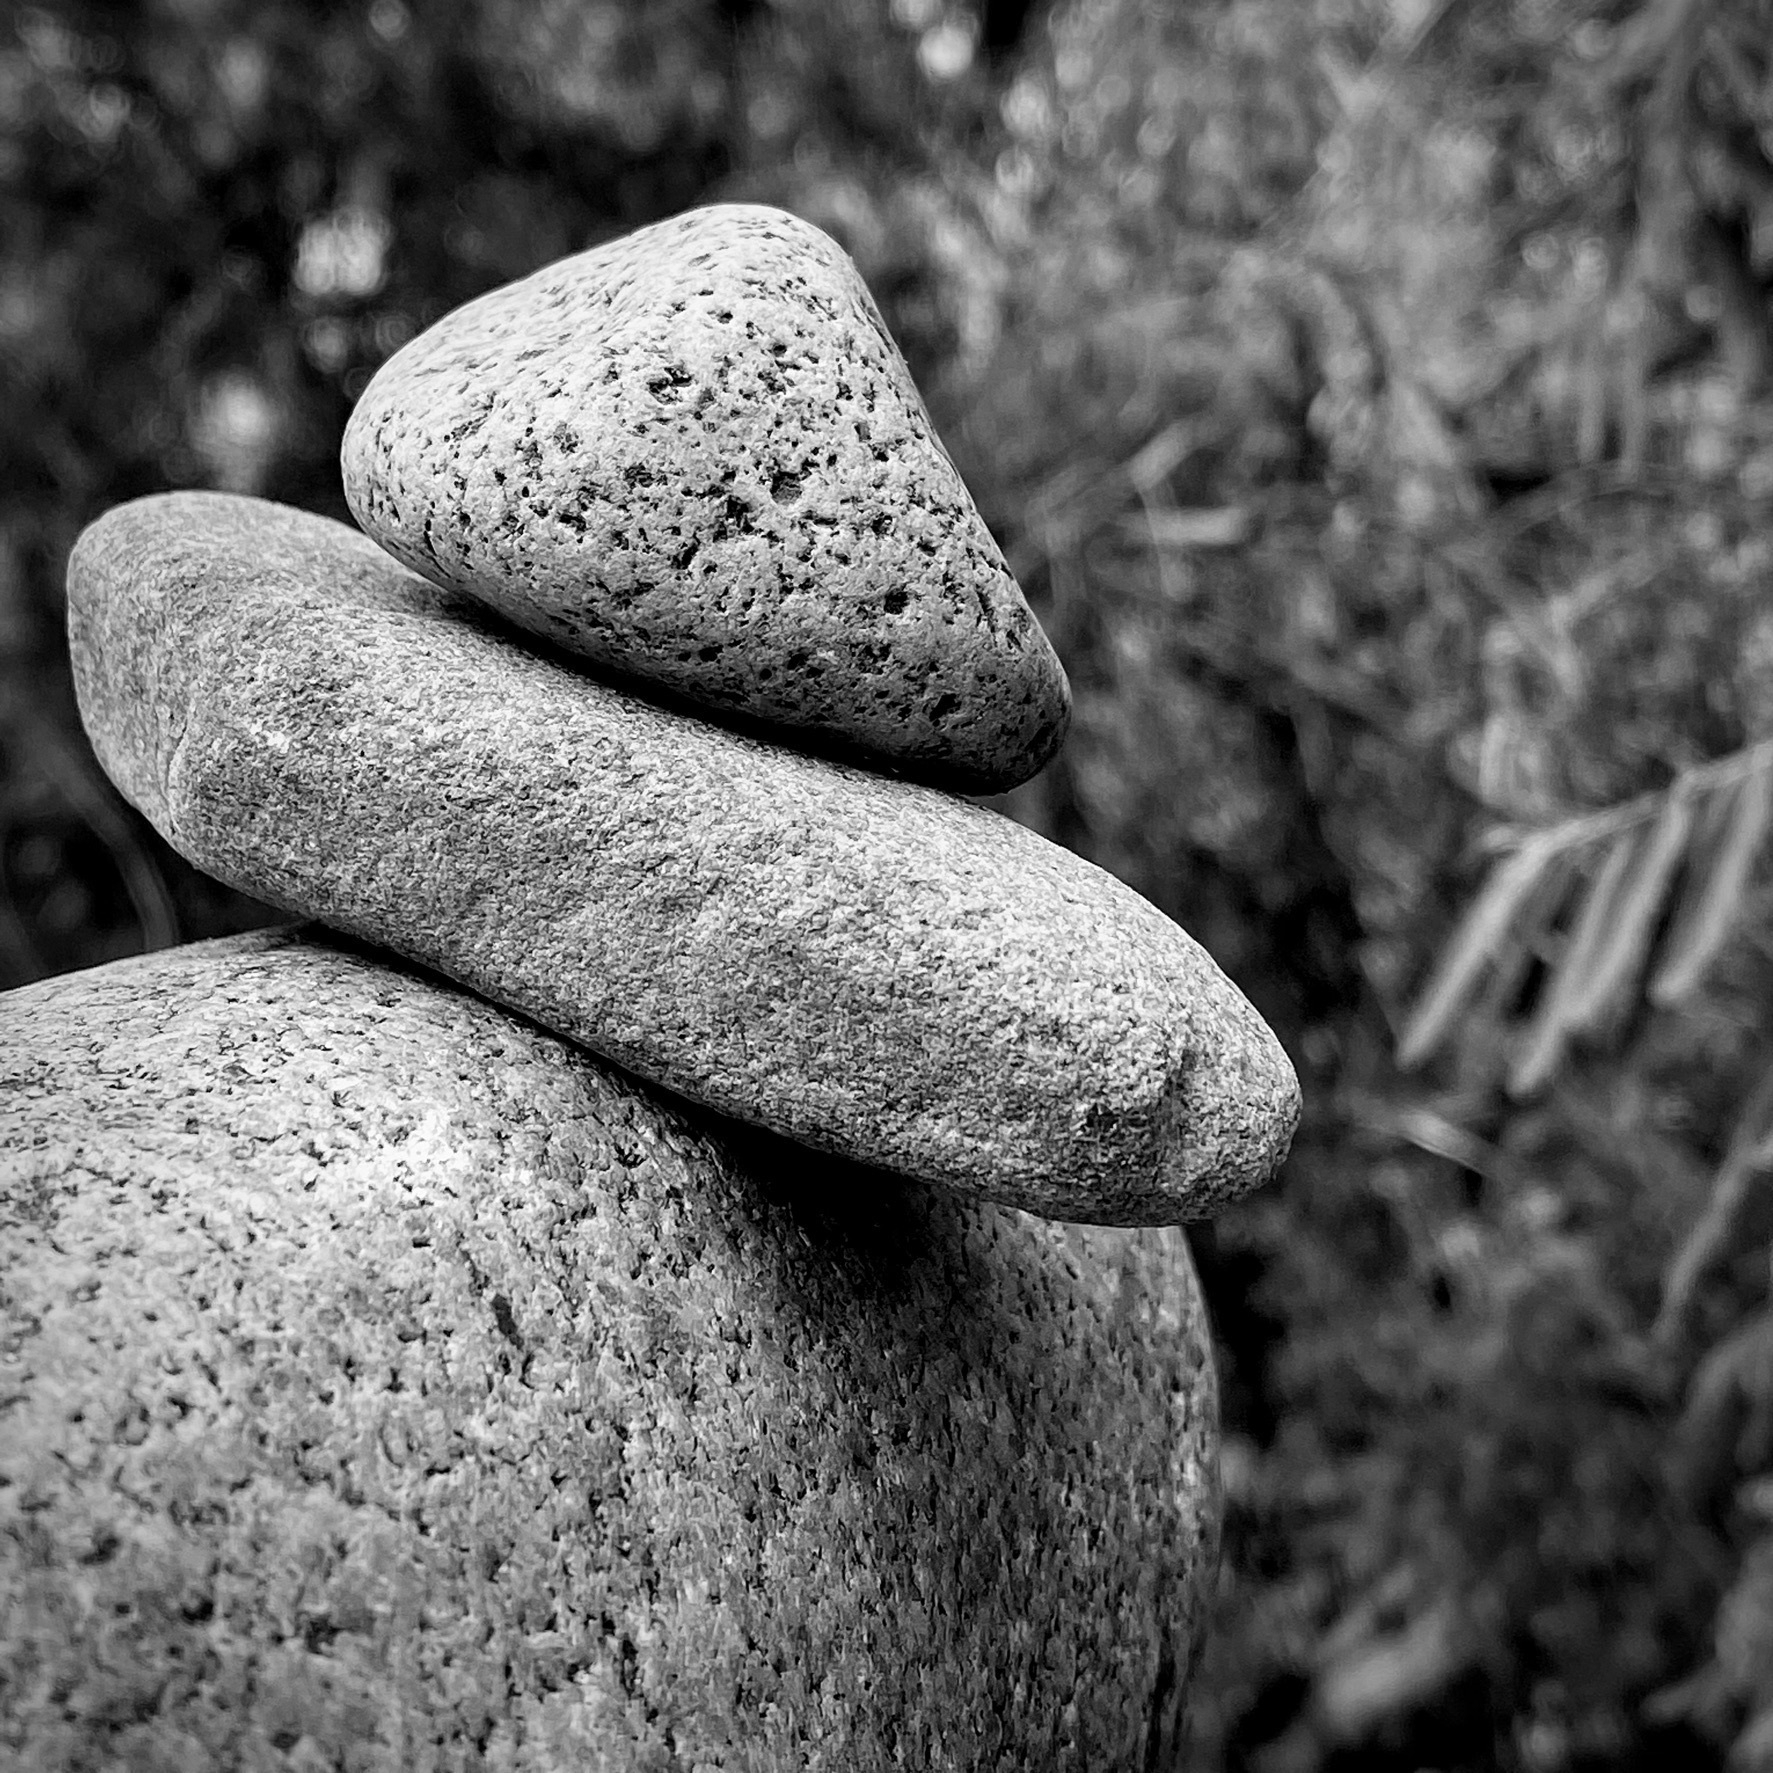 Rocks balanced on each other.